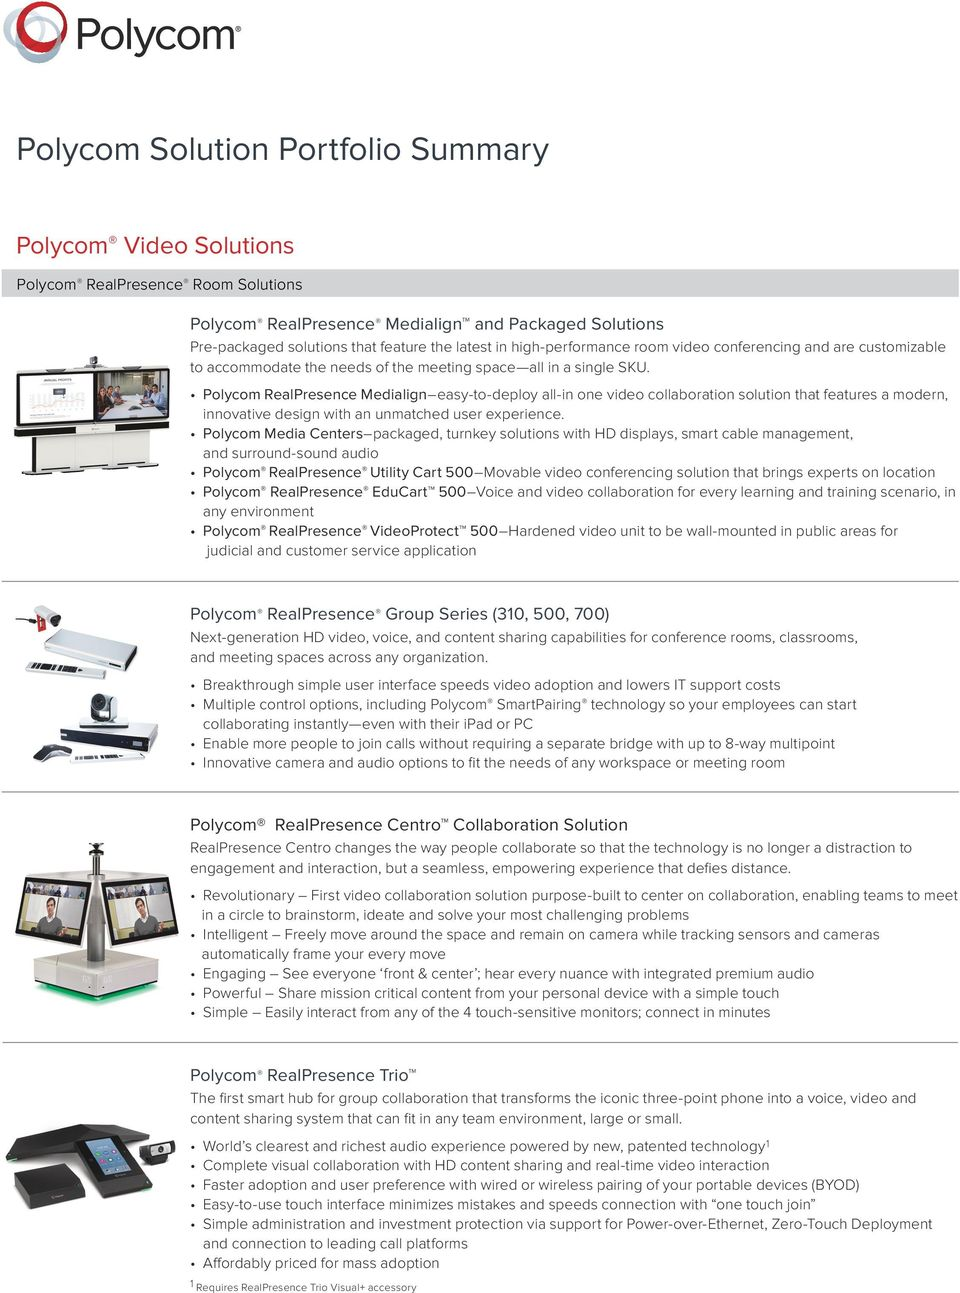 Polycom RealPresence Medialign easy-to-deploy all-in one video collaboration solution that features a modern, innovative design with an unmatched user experience.